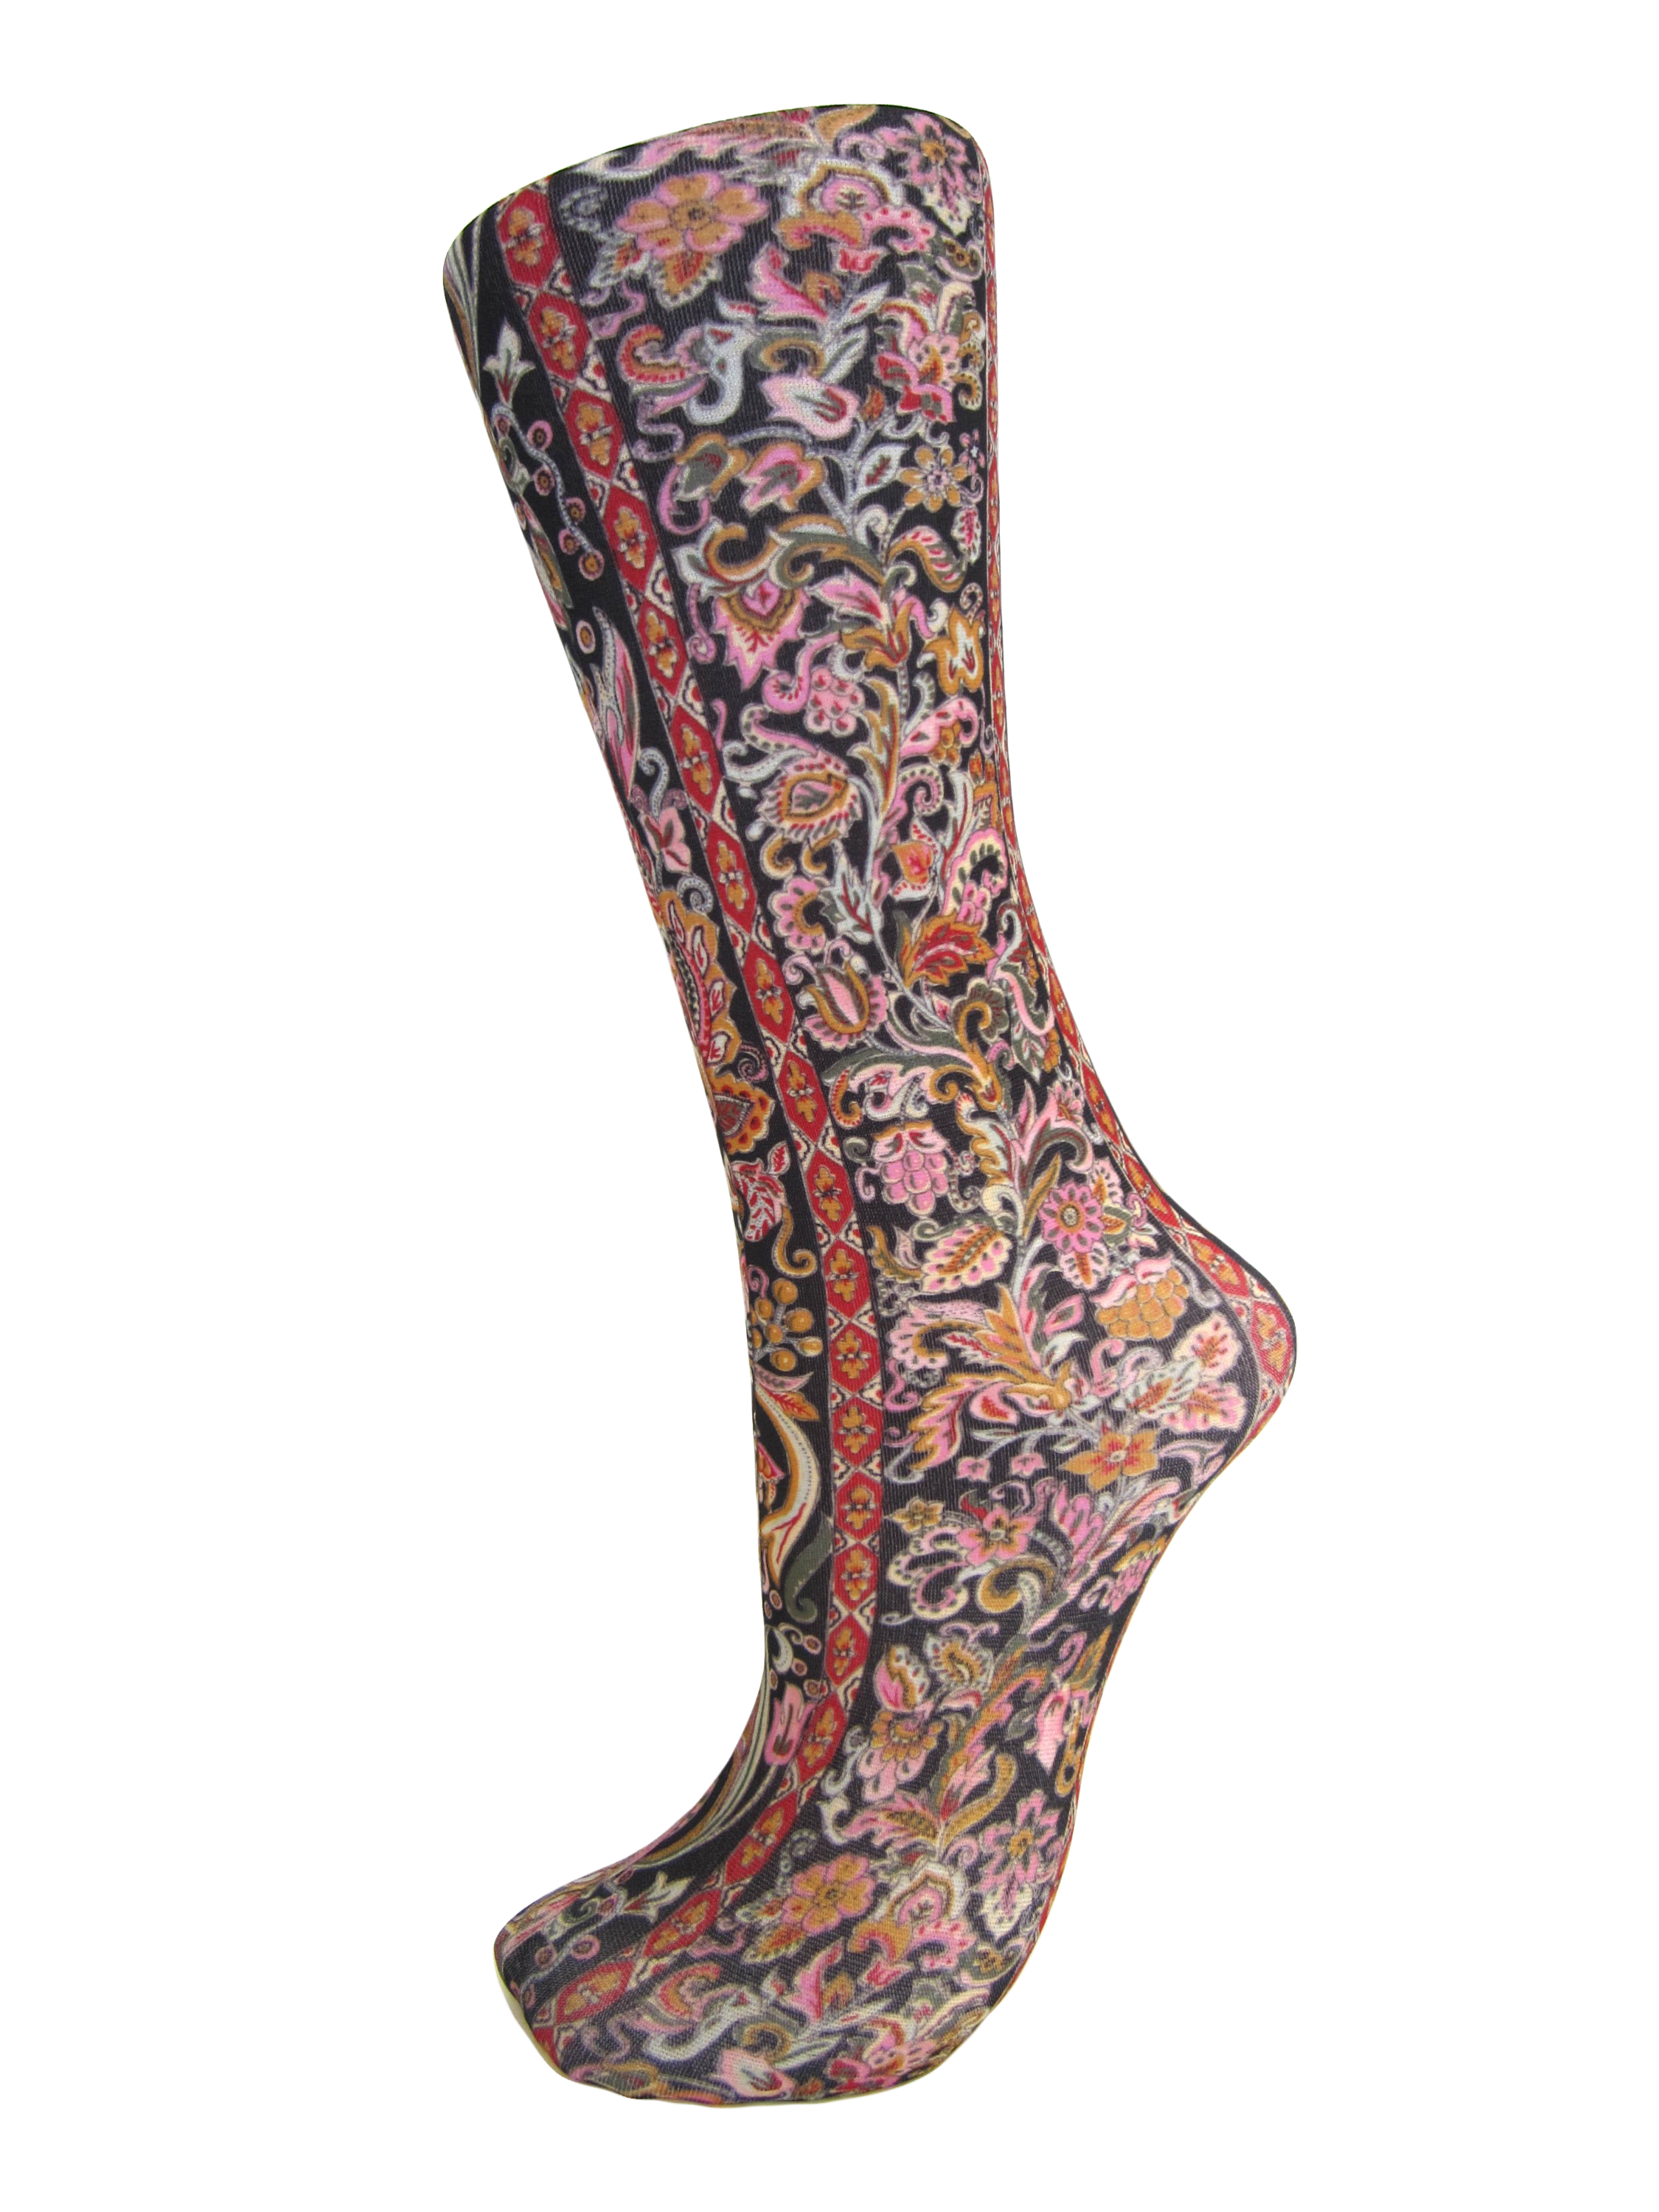 Celeste Stein Black Versace Compression Socks